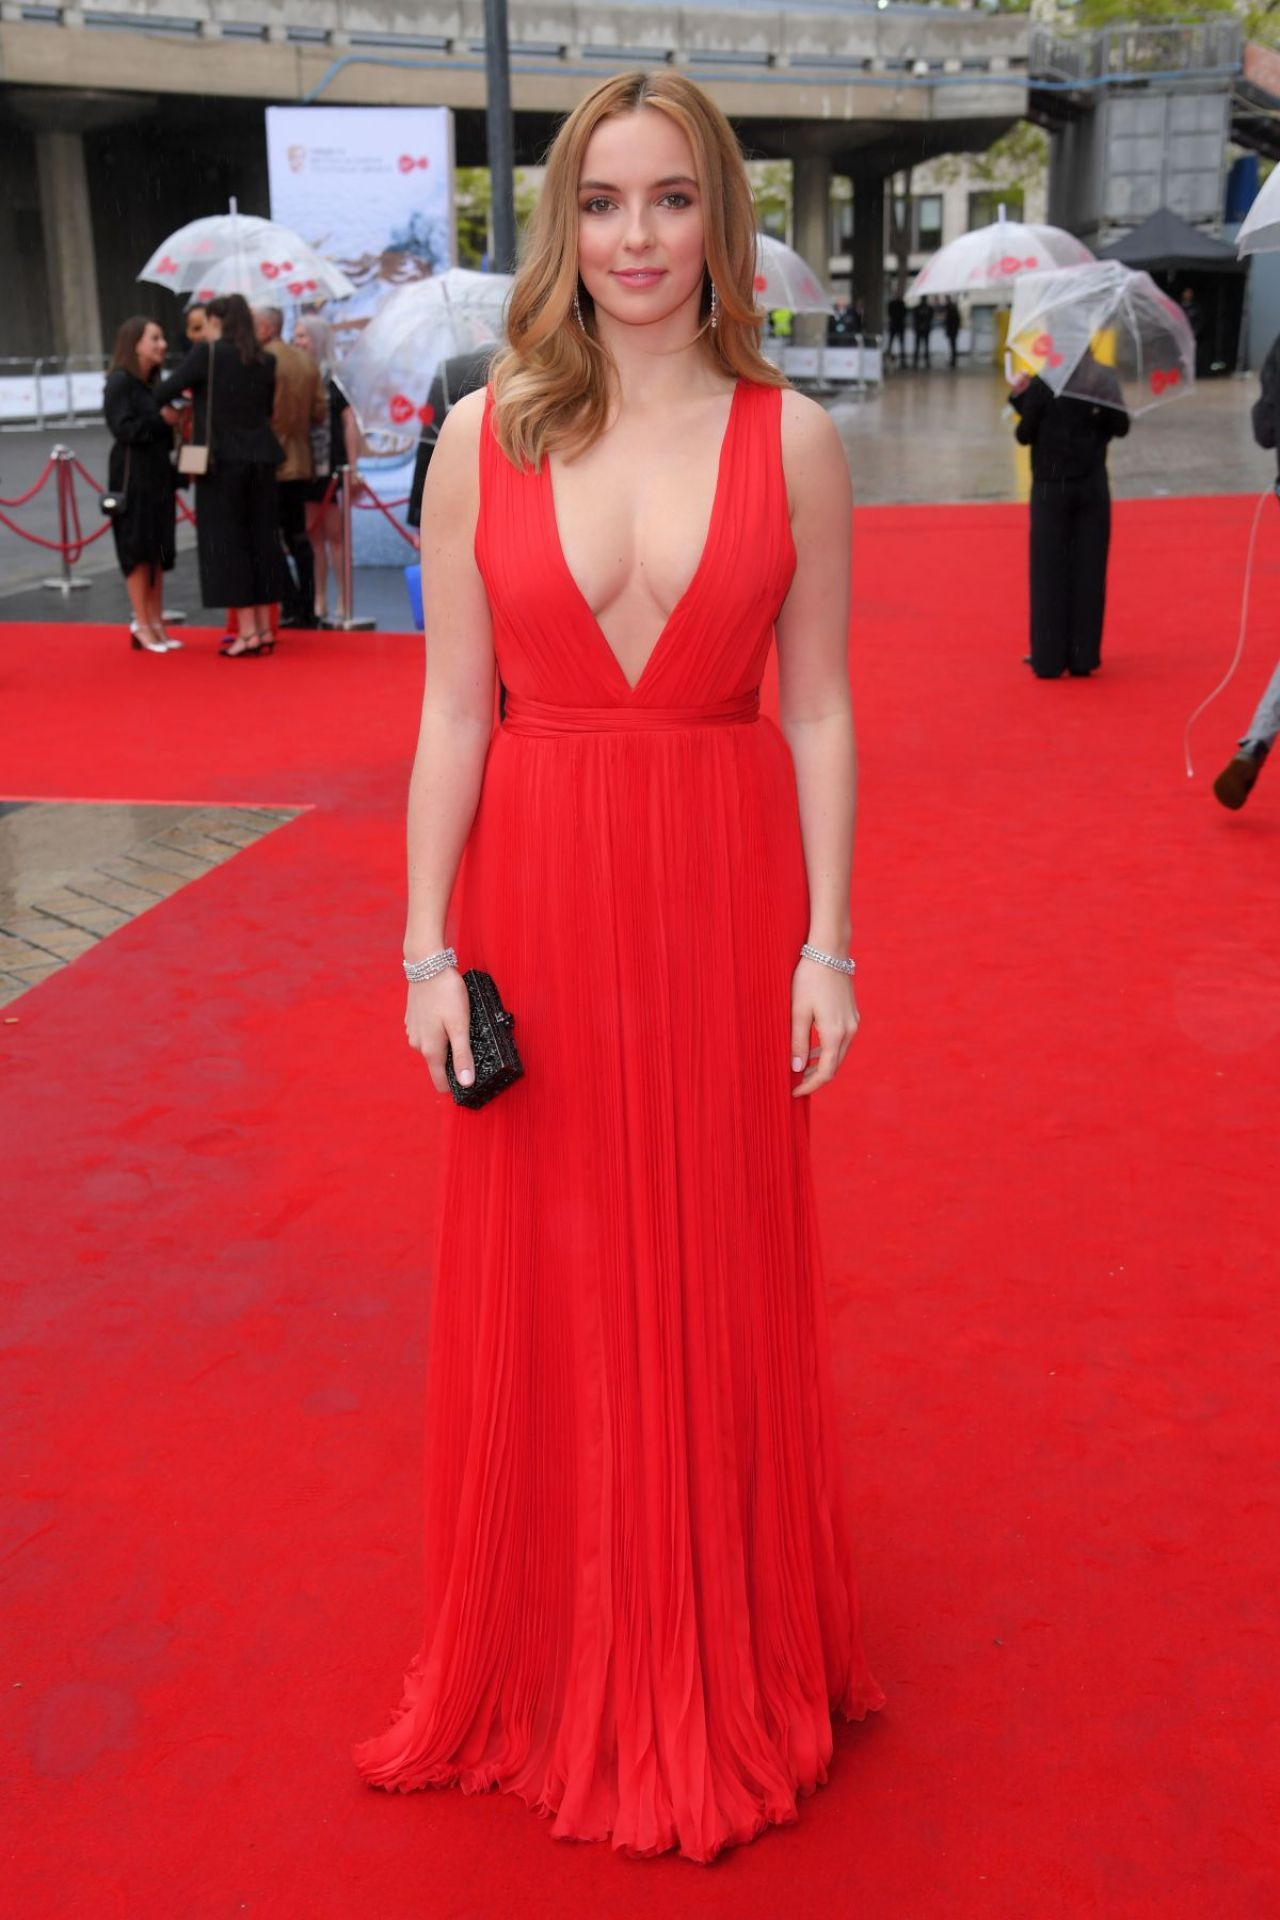 Celebrity Jodie Comer naked (96 photo), Pussy, Paparazzi, Instagram, panties 2006